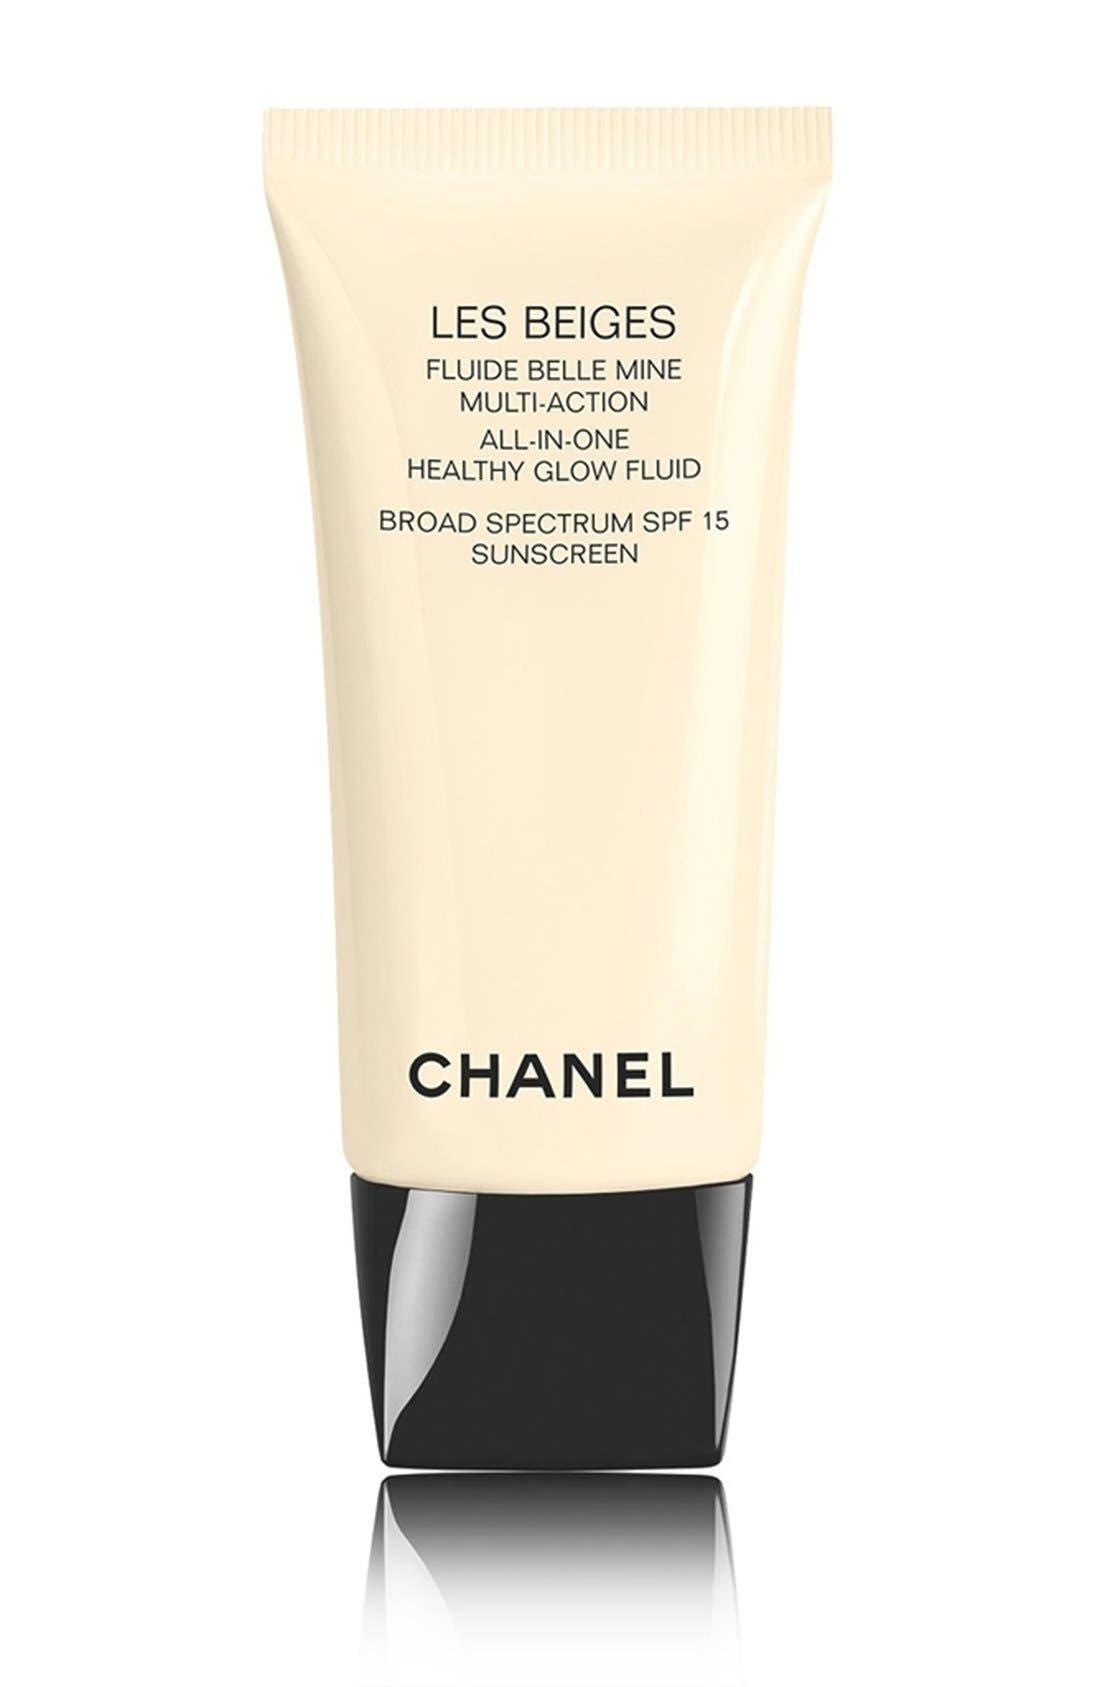 CHANEL LES BEIGES<br />All-In-One Healthy Glow Fluid Broad Spectrum SPF 15 Sunscreen, Main, color, 200